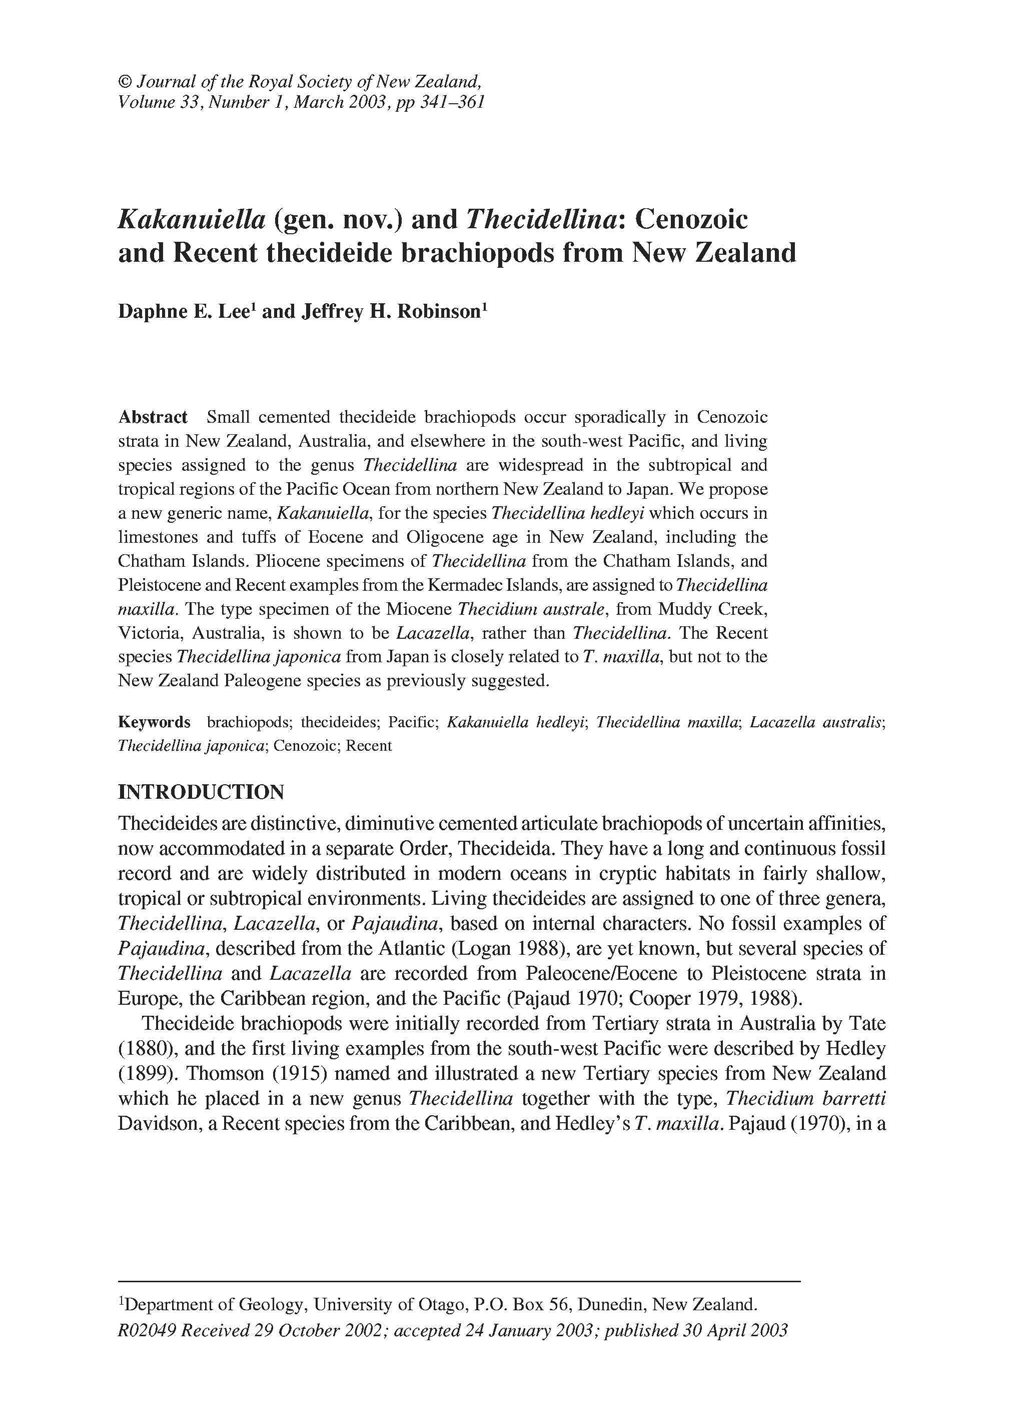 Journal of the Royal Society of New Zealand, Volume 33, Number 1, March 2003, pp 341-361 Kakanuiella (gen. nov.) and Thecidellina: Cenozoic and Recent thecideide brachiopods from New Zealand Daphne E.